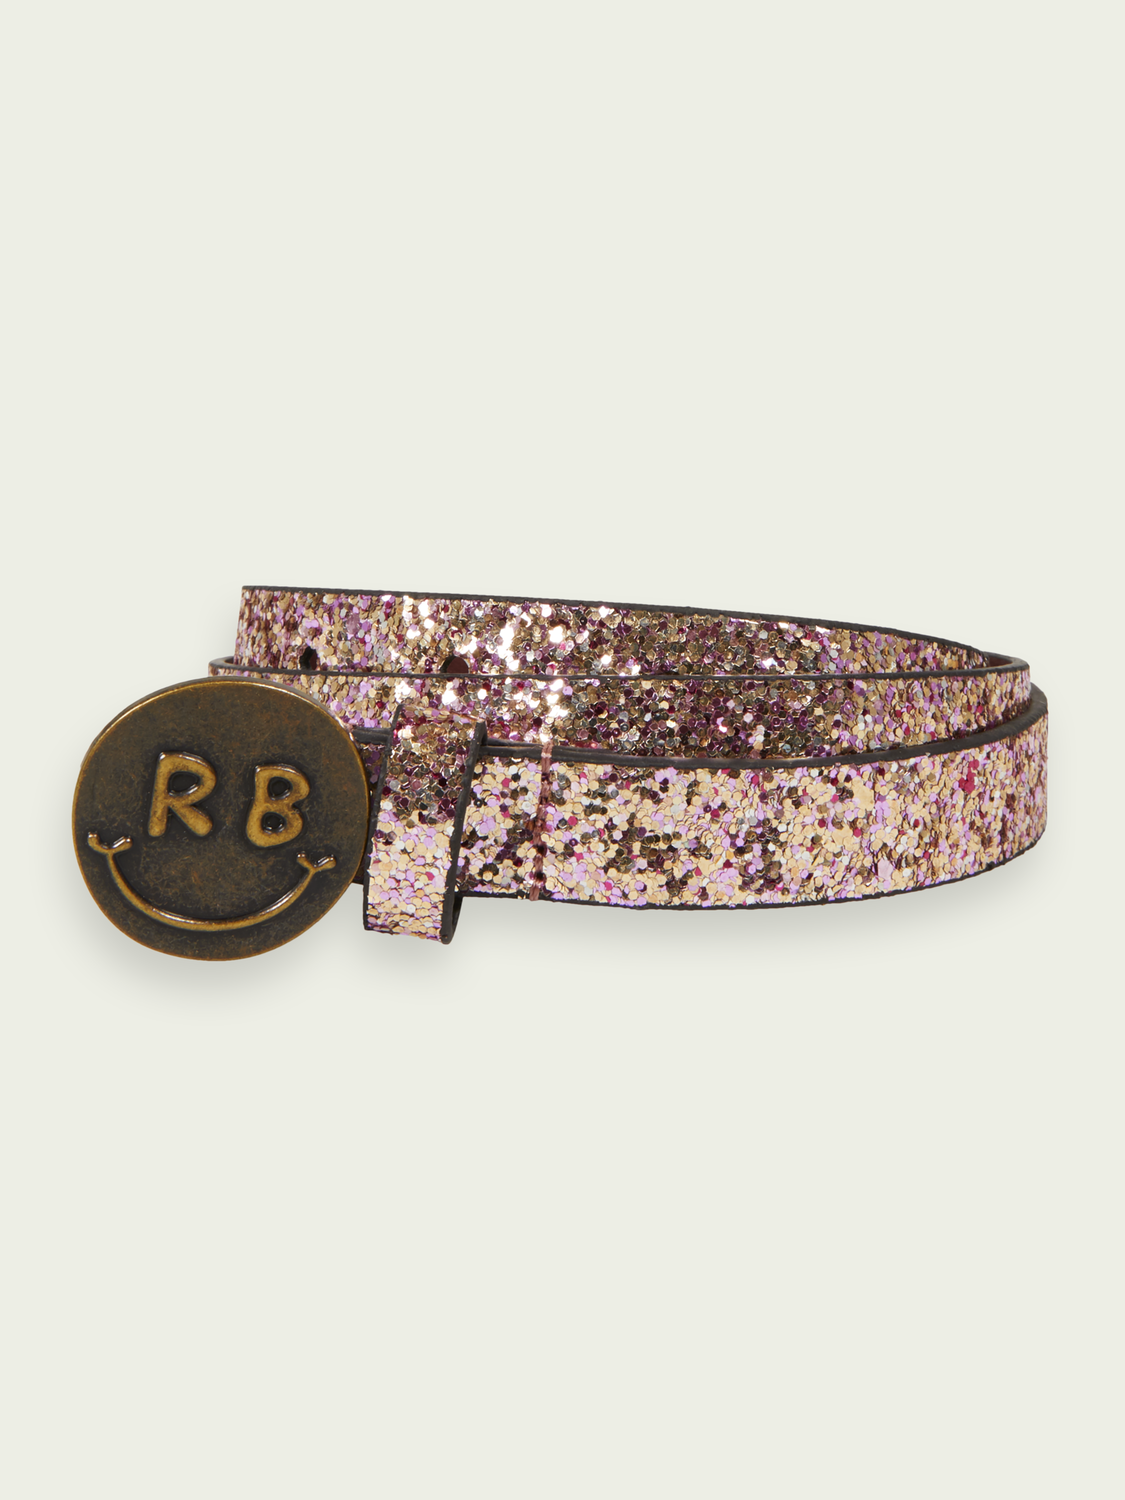 Kids Glitter belt with happy face buckle